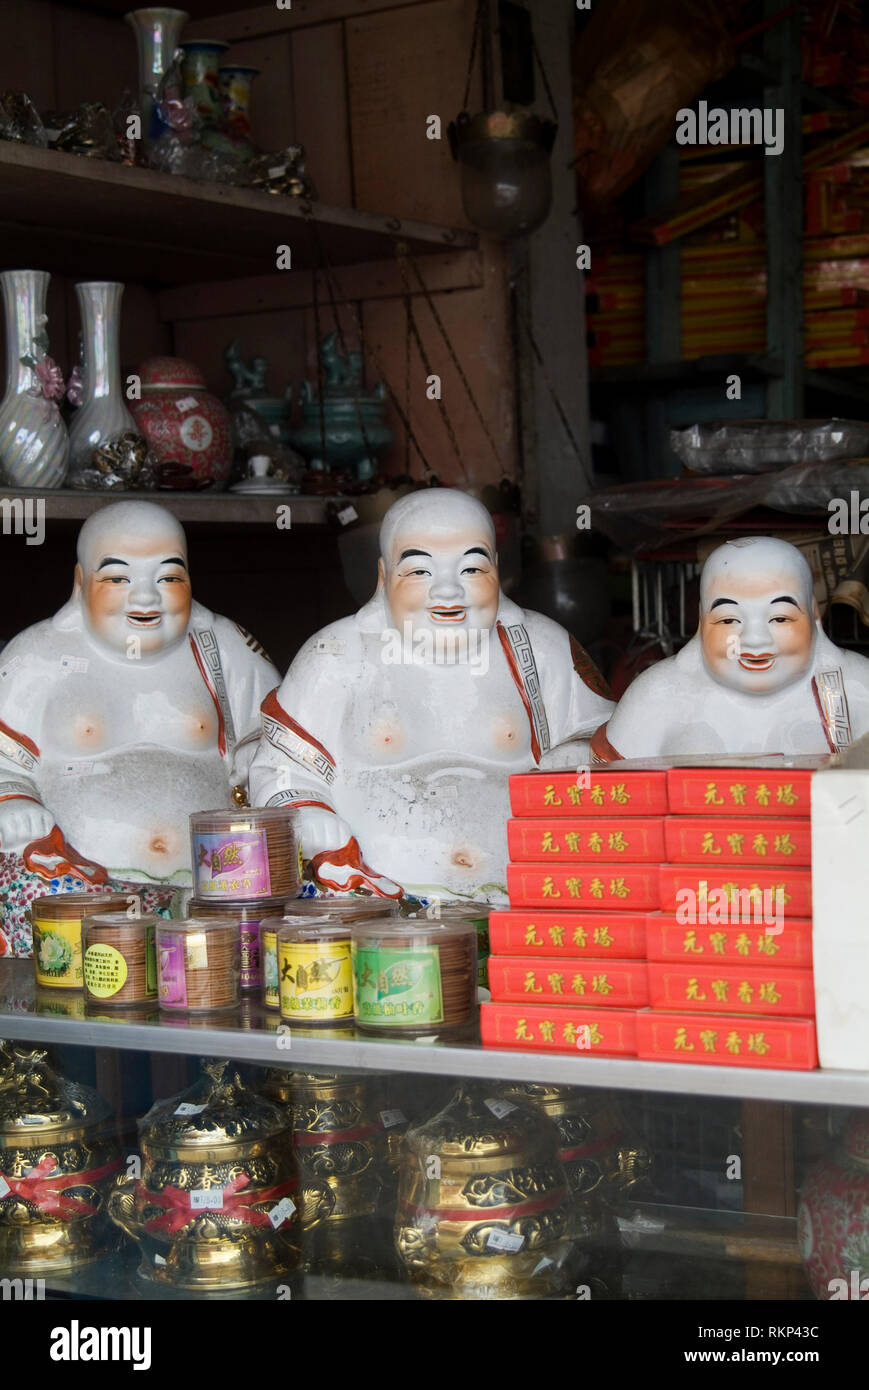 Laughing Buddha for sale in a shop in Malacca, also known as Melaka, Malaysia. - Stock Image